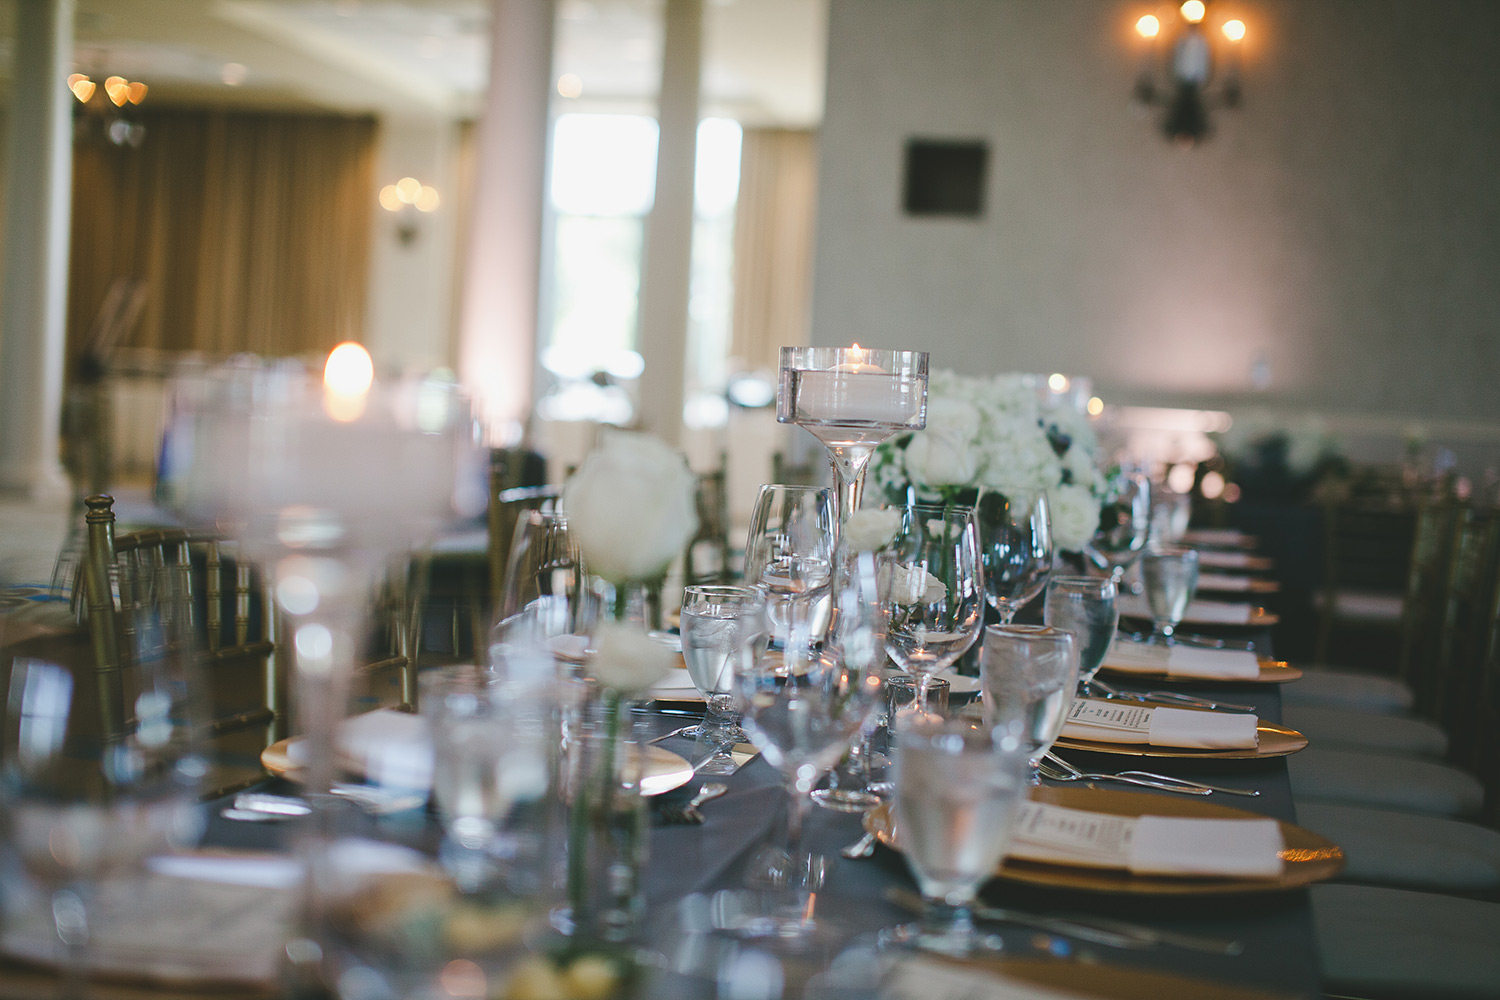 River Crest Country club grey linen with floating candles and gold chargers on table